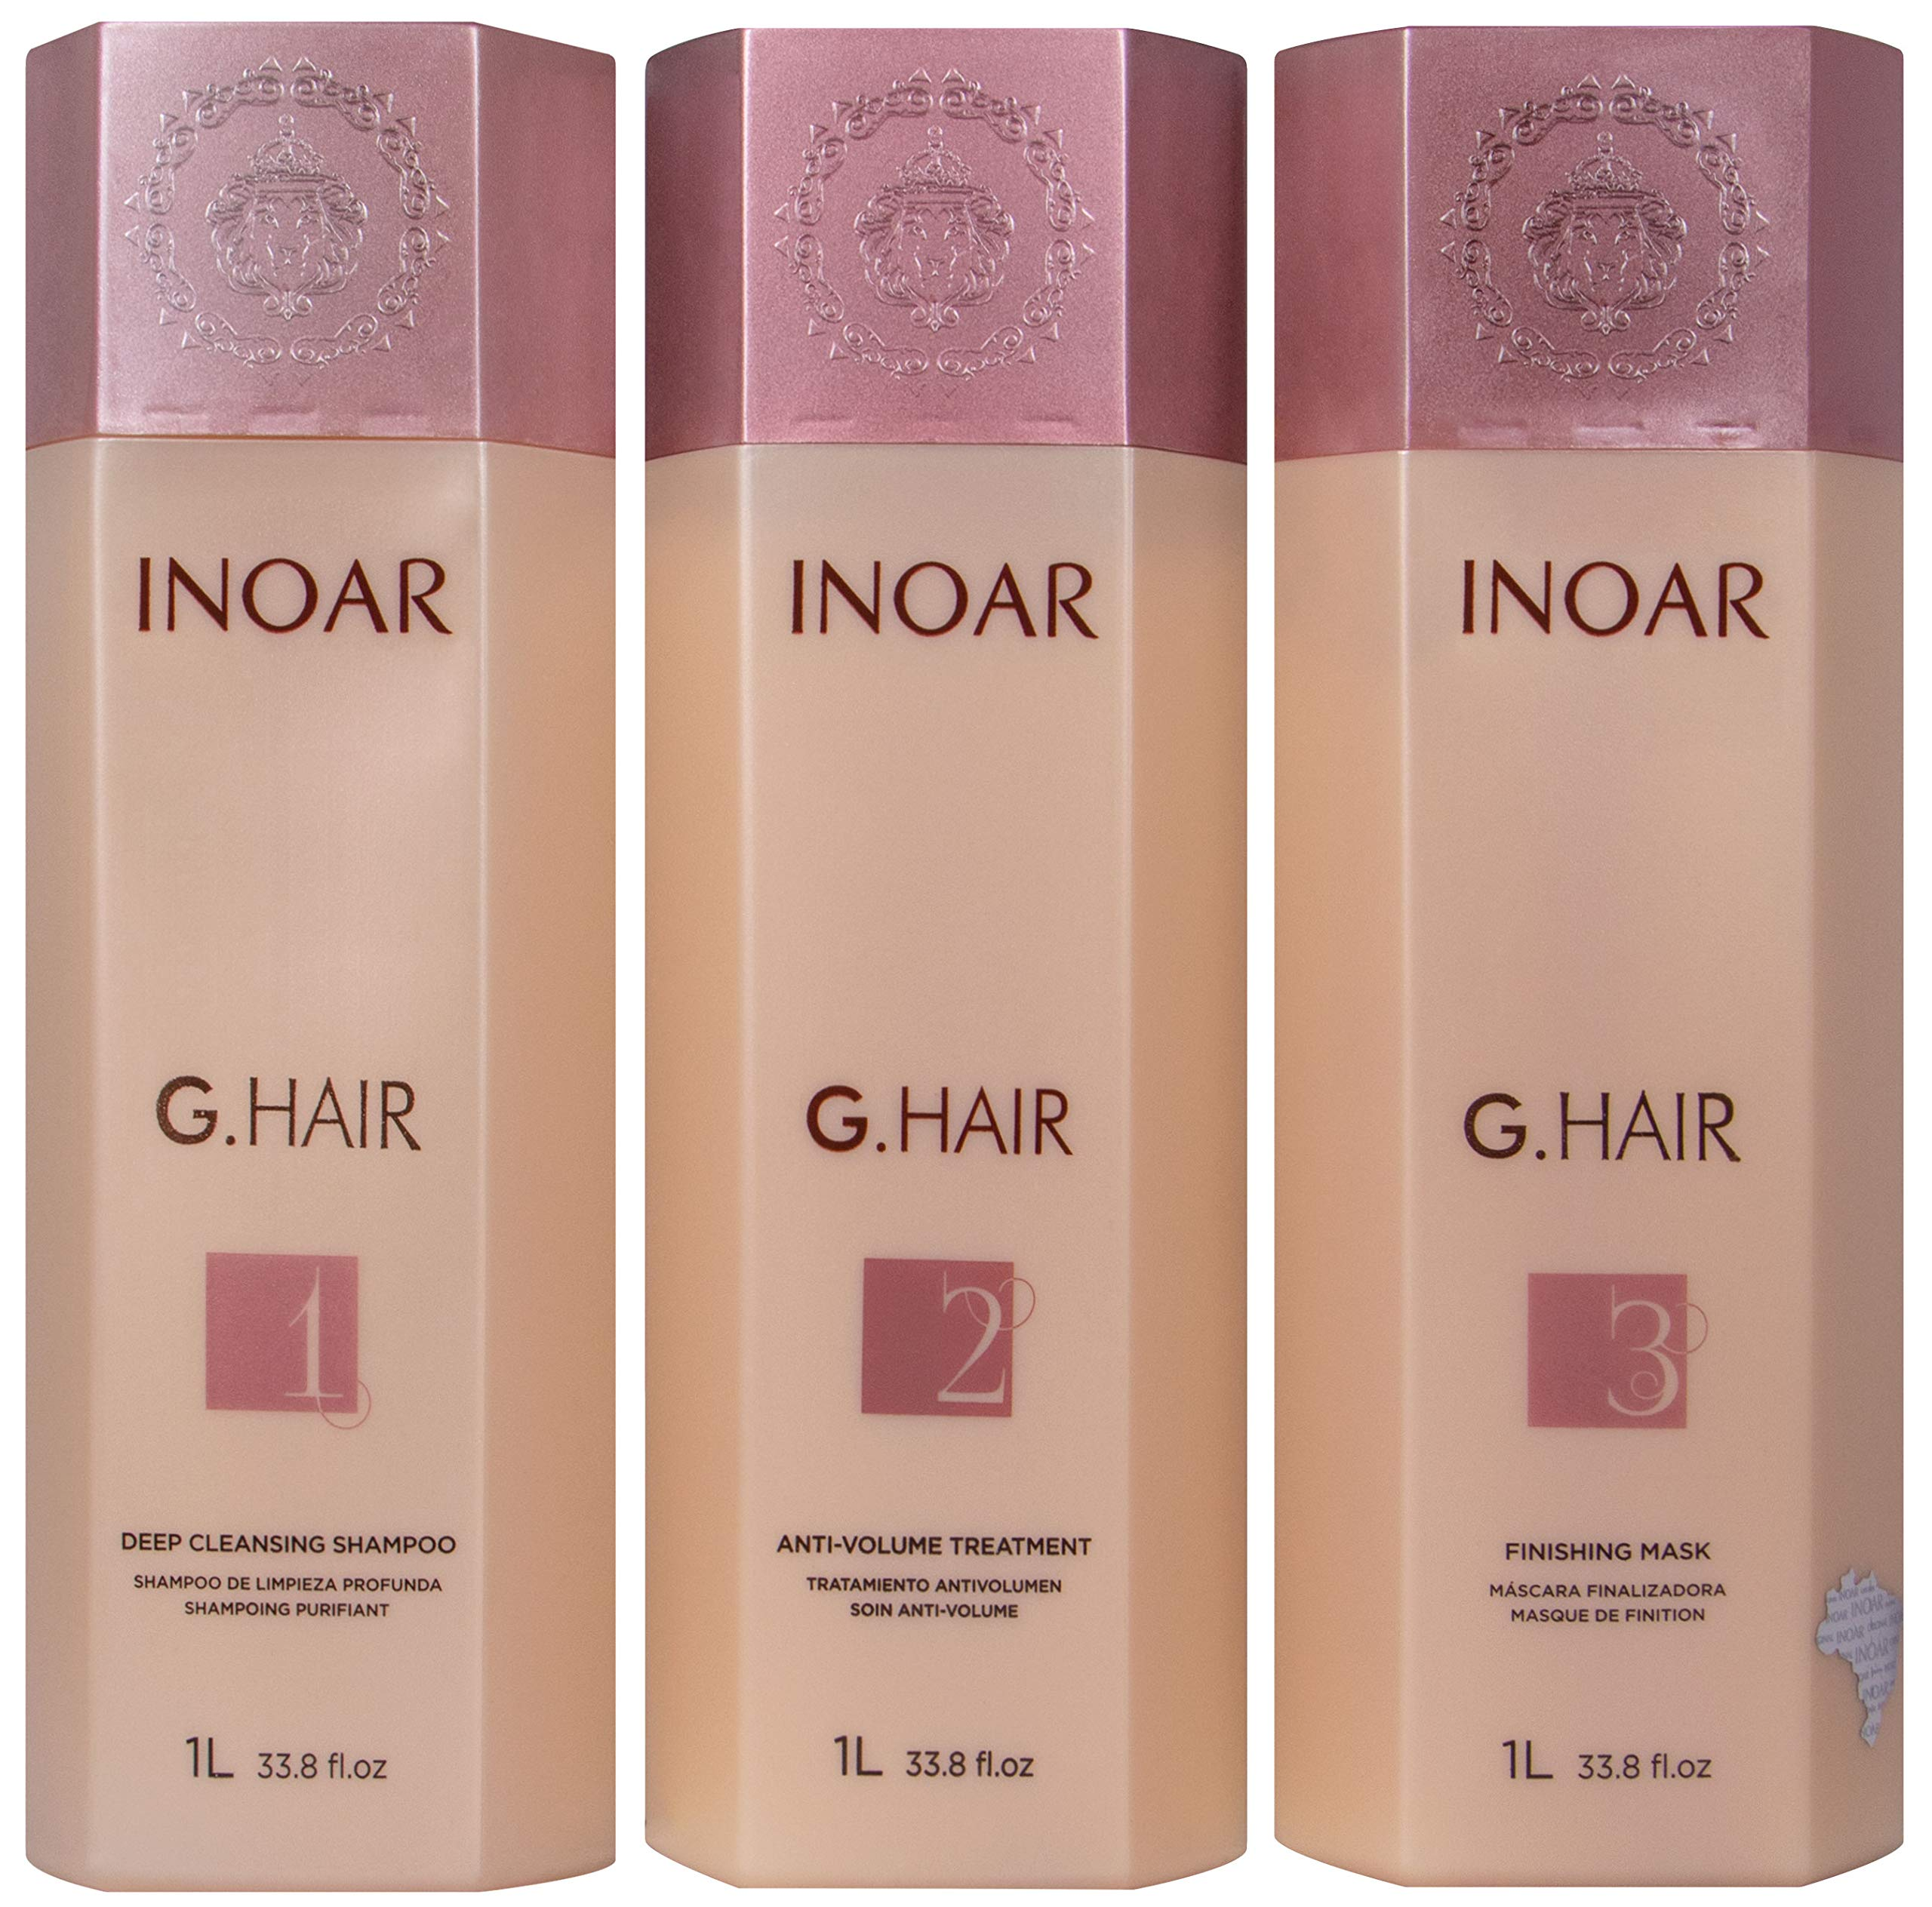 INOAR PROFESSIONAL - G-Hair Keratin Smoothing Shampoo & Conditioner - The Perfect Combination to Hydrate, Smooth & Straighten Your Hair Without Damaging Its Texture (33.8 Ounces /1000 Milliliters) by Inoar